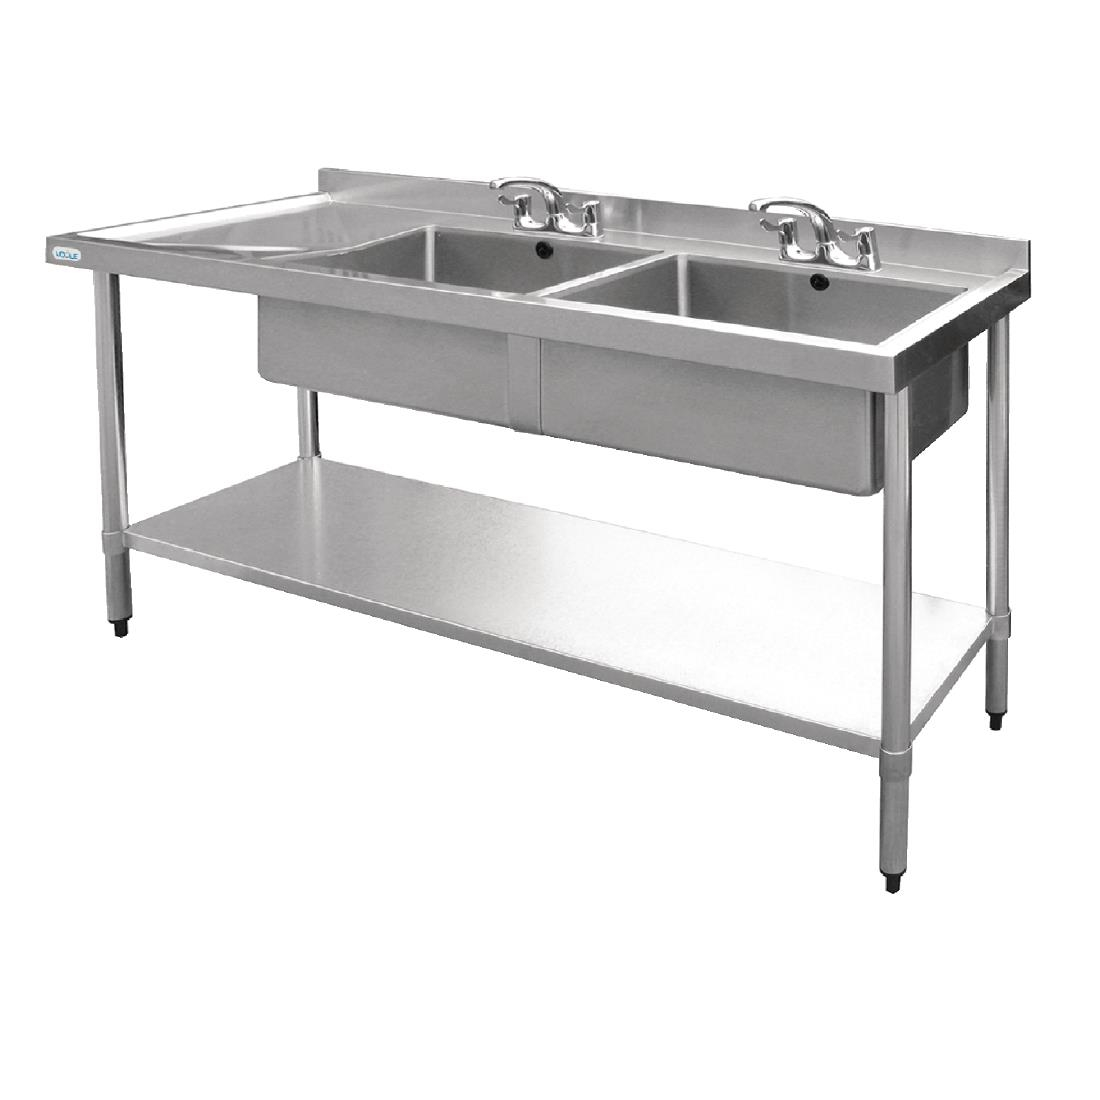 ... Vogue Stainless Steel Sink Double Bowl With Left